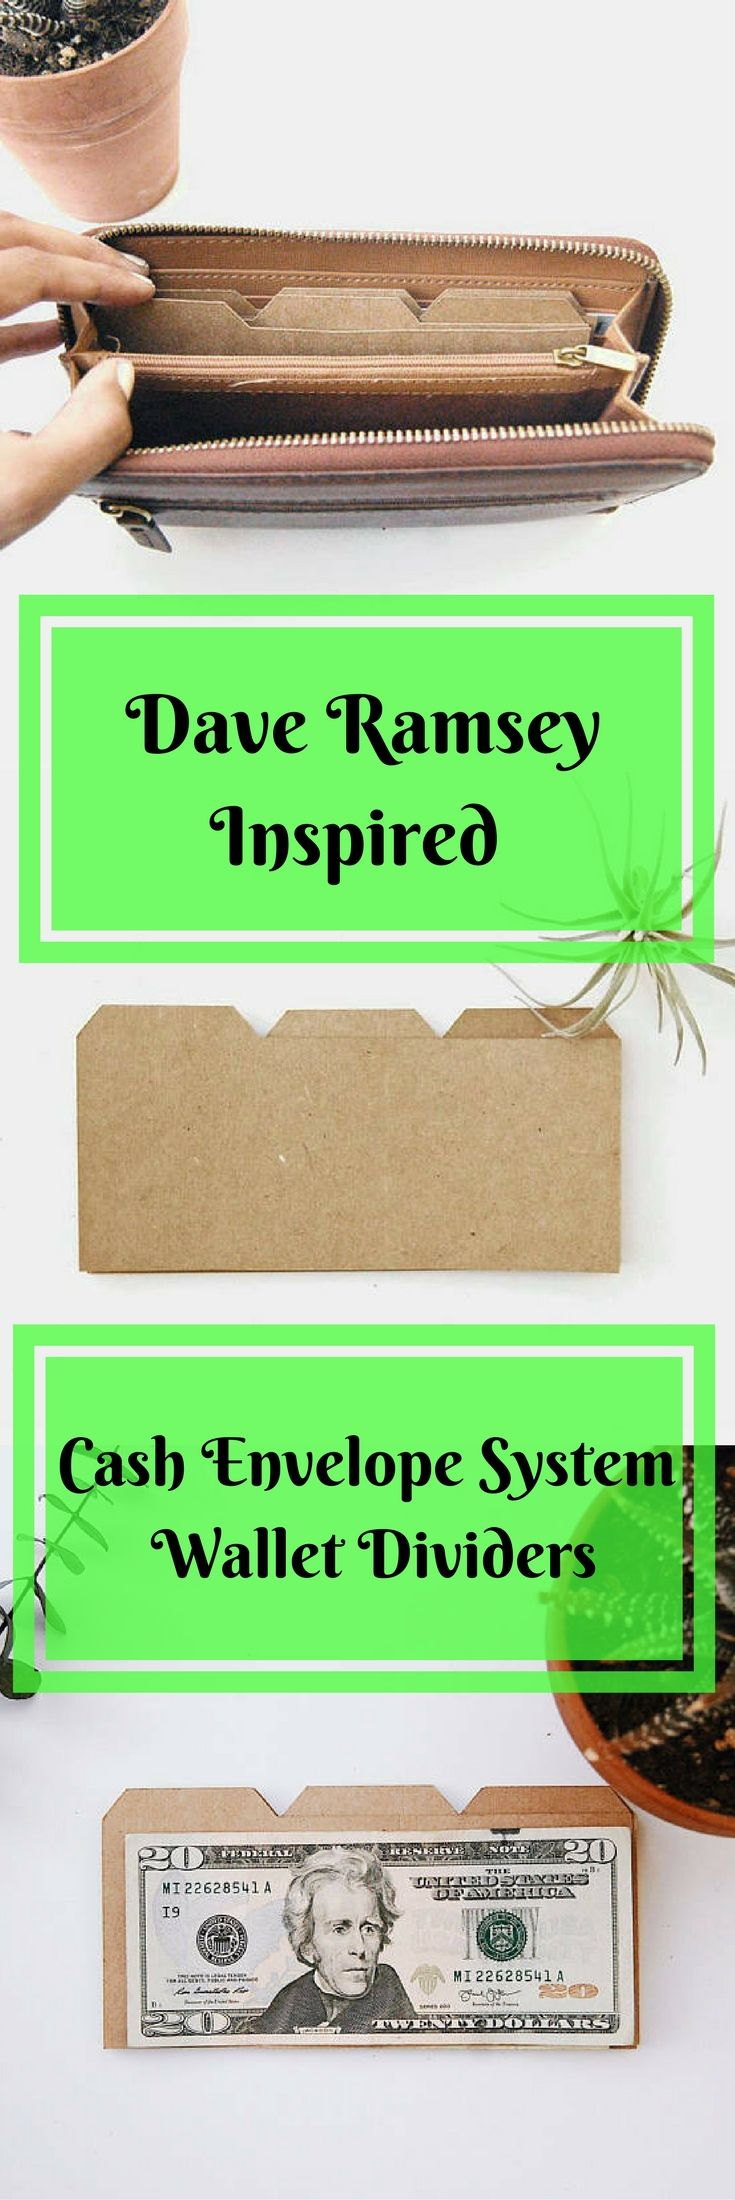 Are you using the cash envelope budgeting system but have trouble keeping your cash separated by category? These wallet Dividers are the perfect solution! #daveramsey #cashenvelopesystem #budgeting #frugalliving #moneysense #organization #finance #affiliate